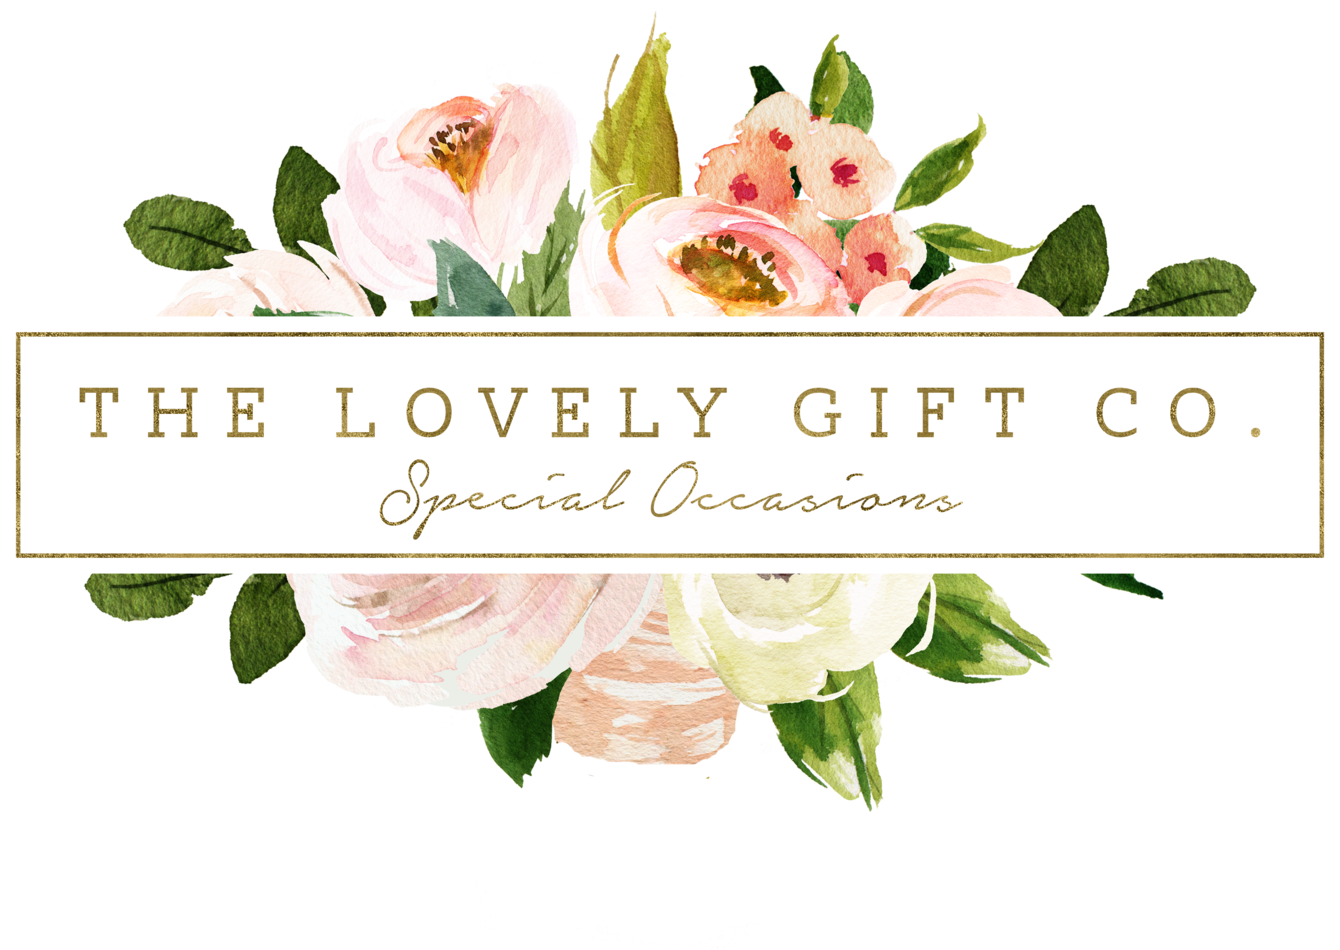 The Lovely Gift Co